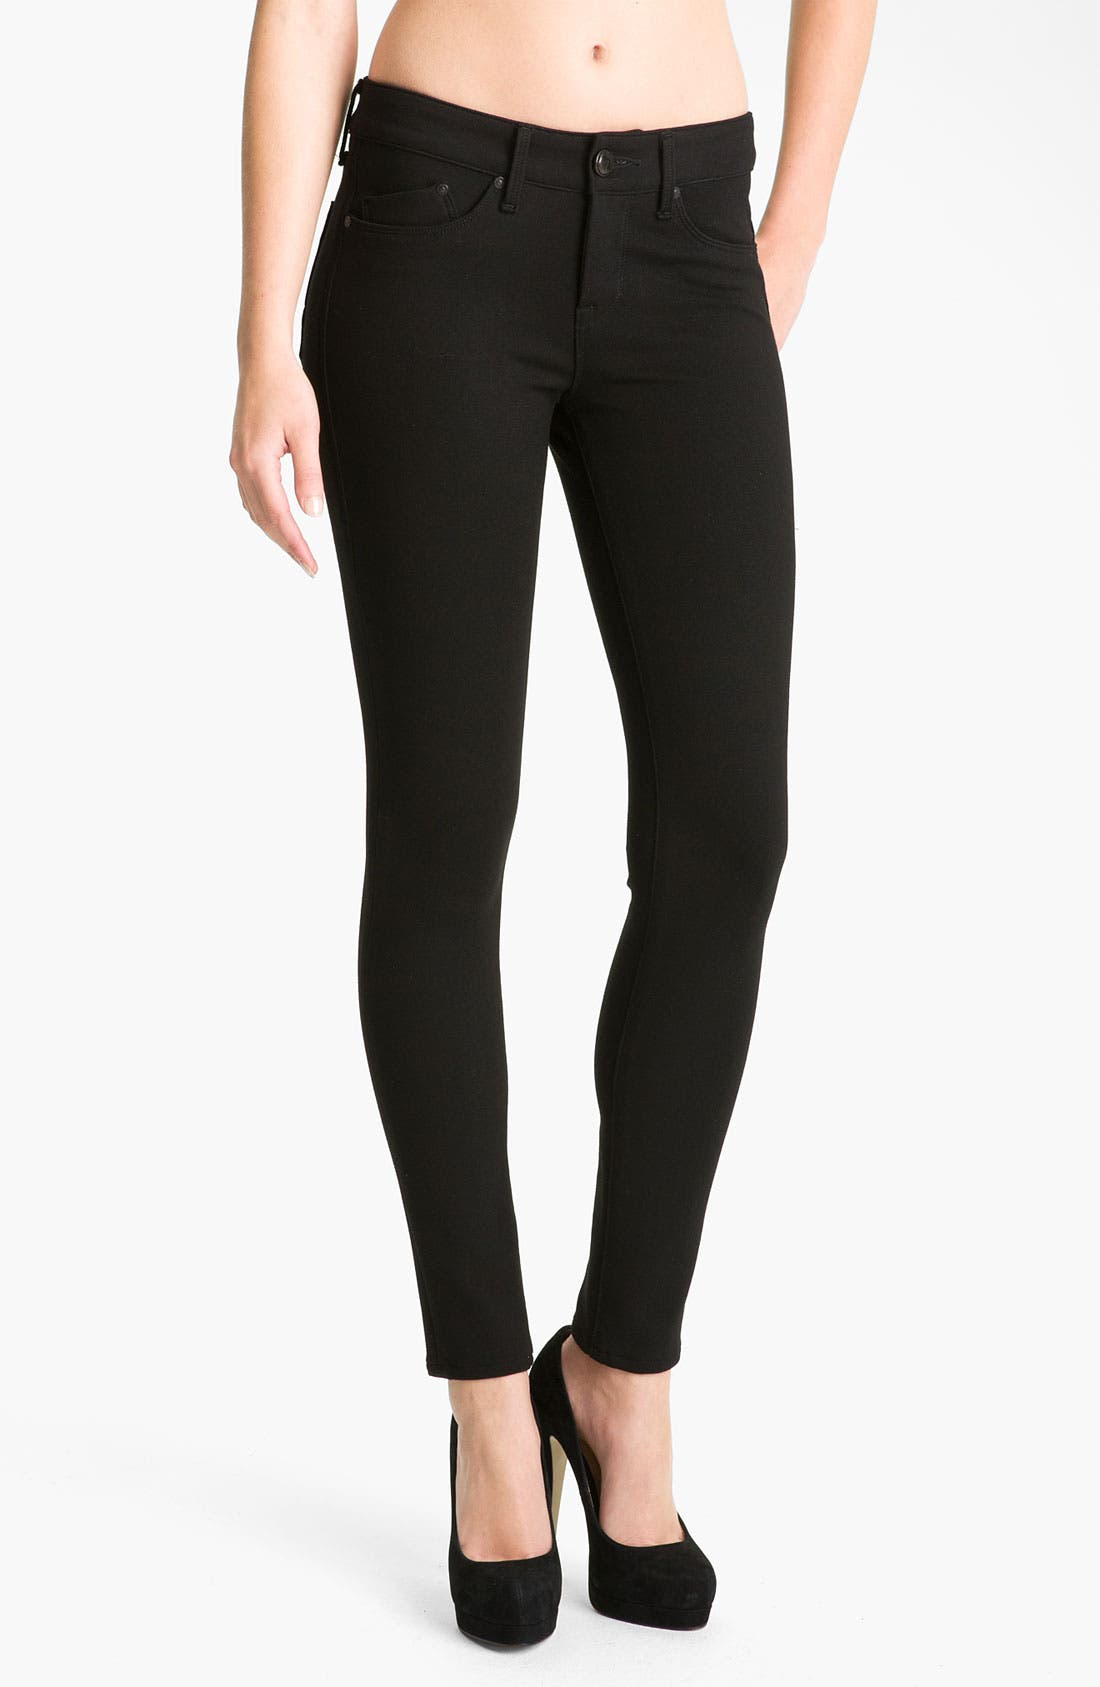 Main Image - Dylan George 'Runway' Mid Rise Stretch Knit Leggings